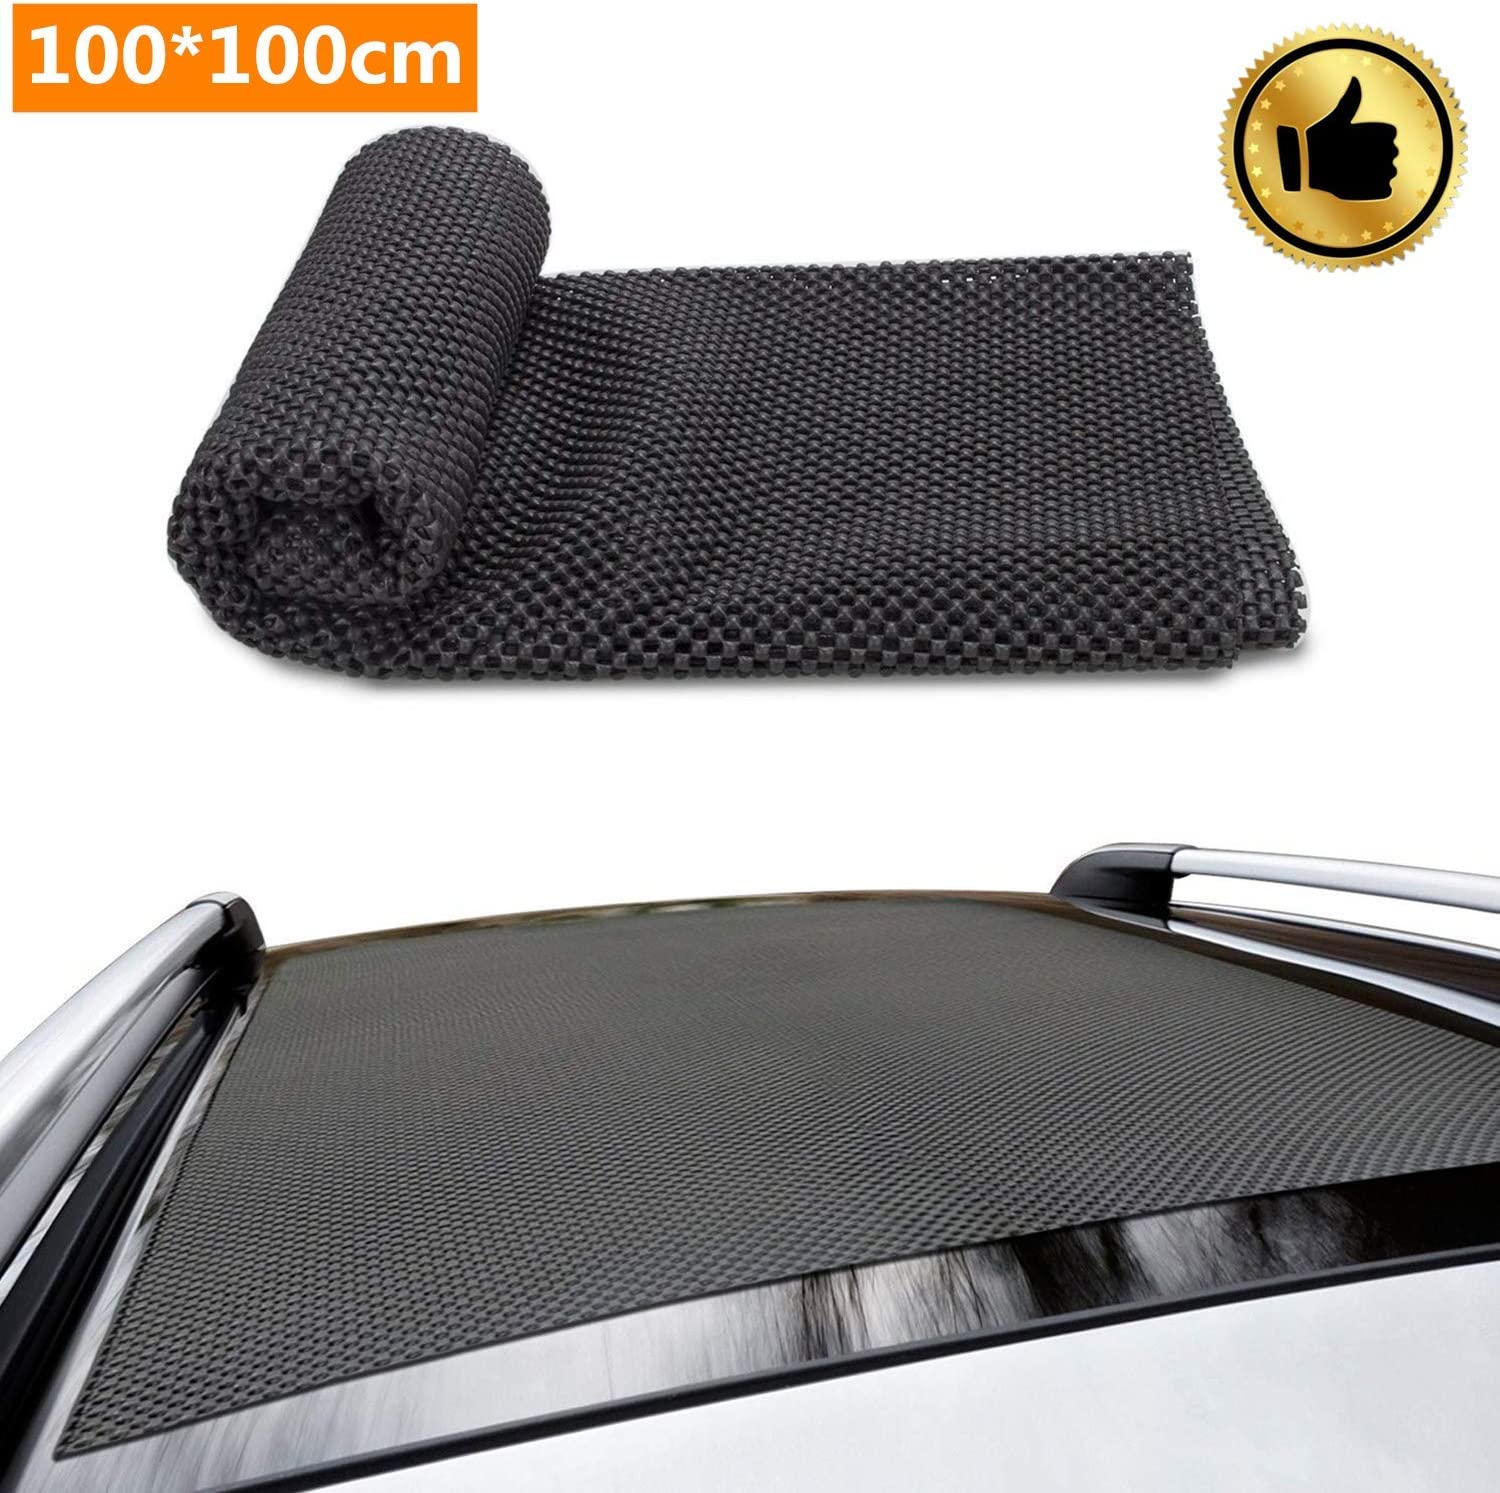 100cm Roof Protective Mat Fit Vehicles,Cars SUVs,Anti-Scratch Car Roof Racks Pads for Roof Storage Bags Cargo Bag Car Top Car Roof Mat Pads,100